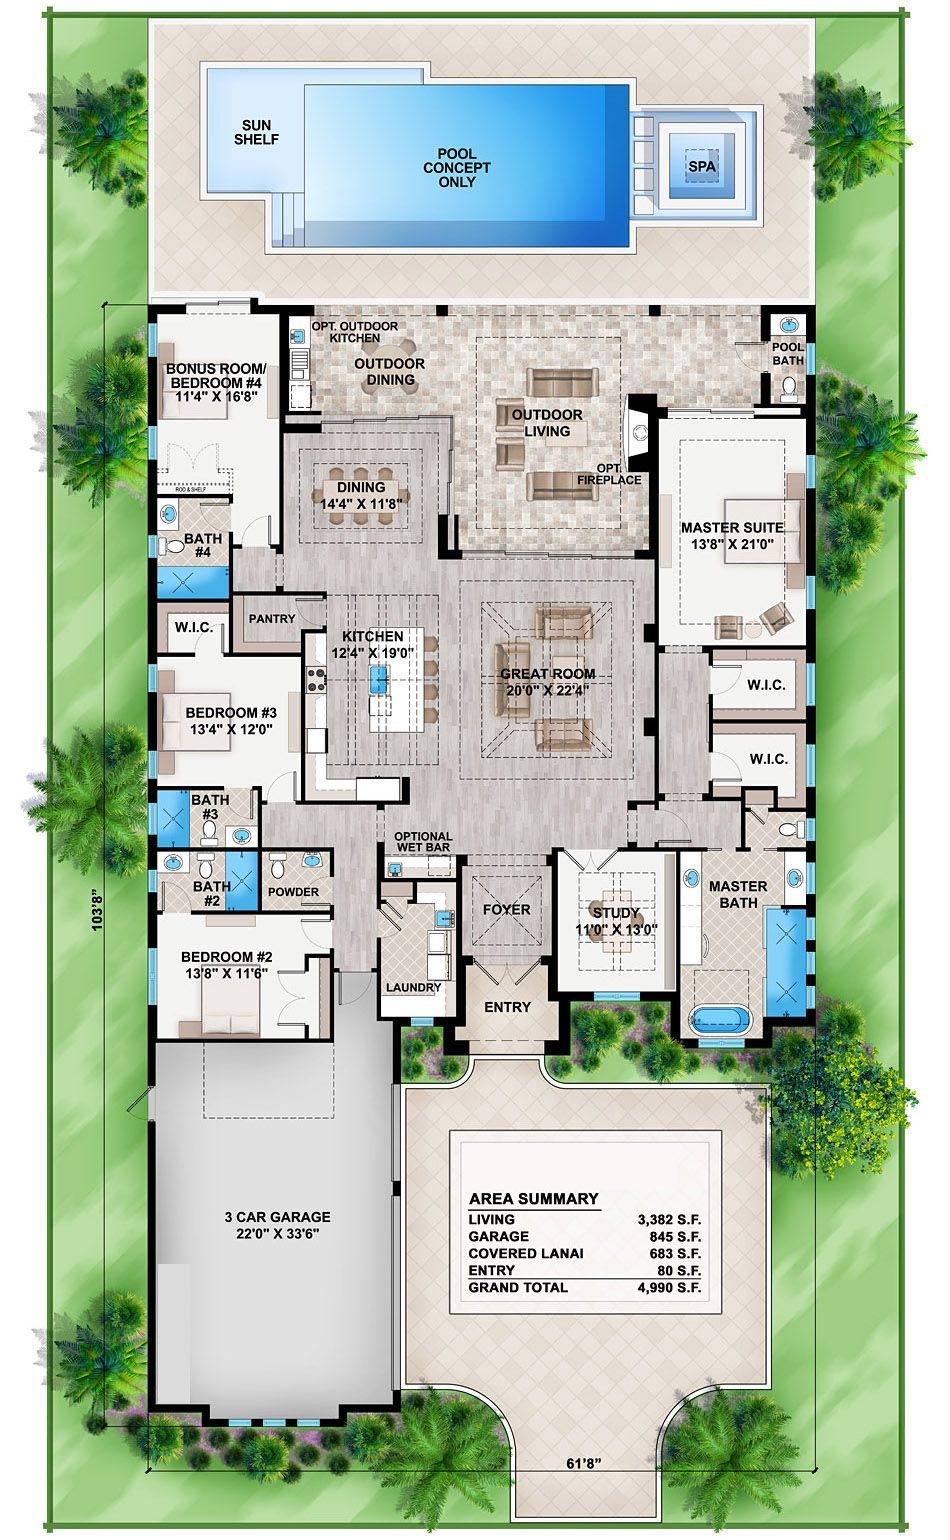 House Plan 575 00027 Mediterranean Plan 3 119 Square Feet 4 Bedrooms 3 Bathrooms Florida House Plans Contemporary House Plans Modern House Plans